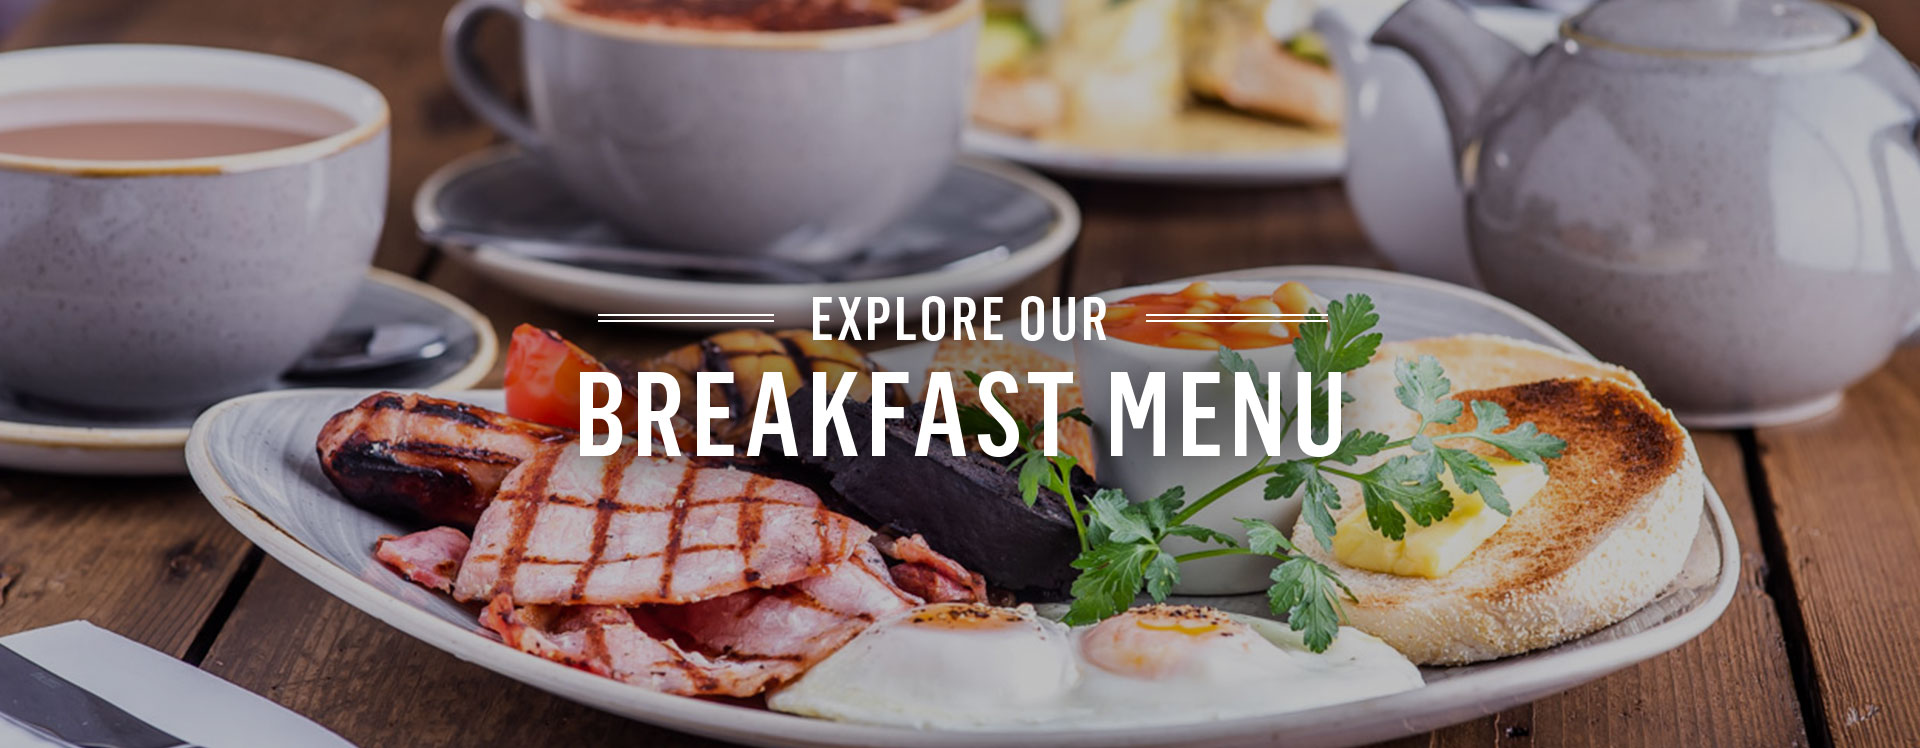 Breakfast at The Marquis of Granby - Book a table